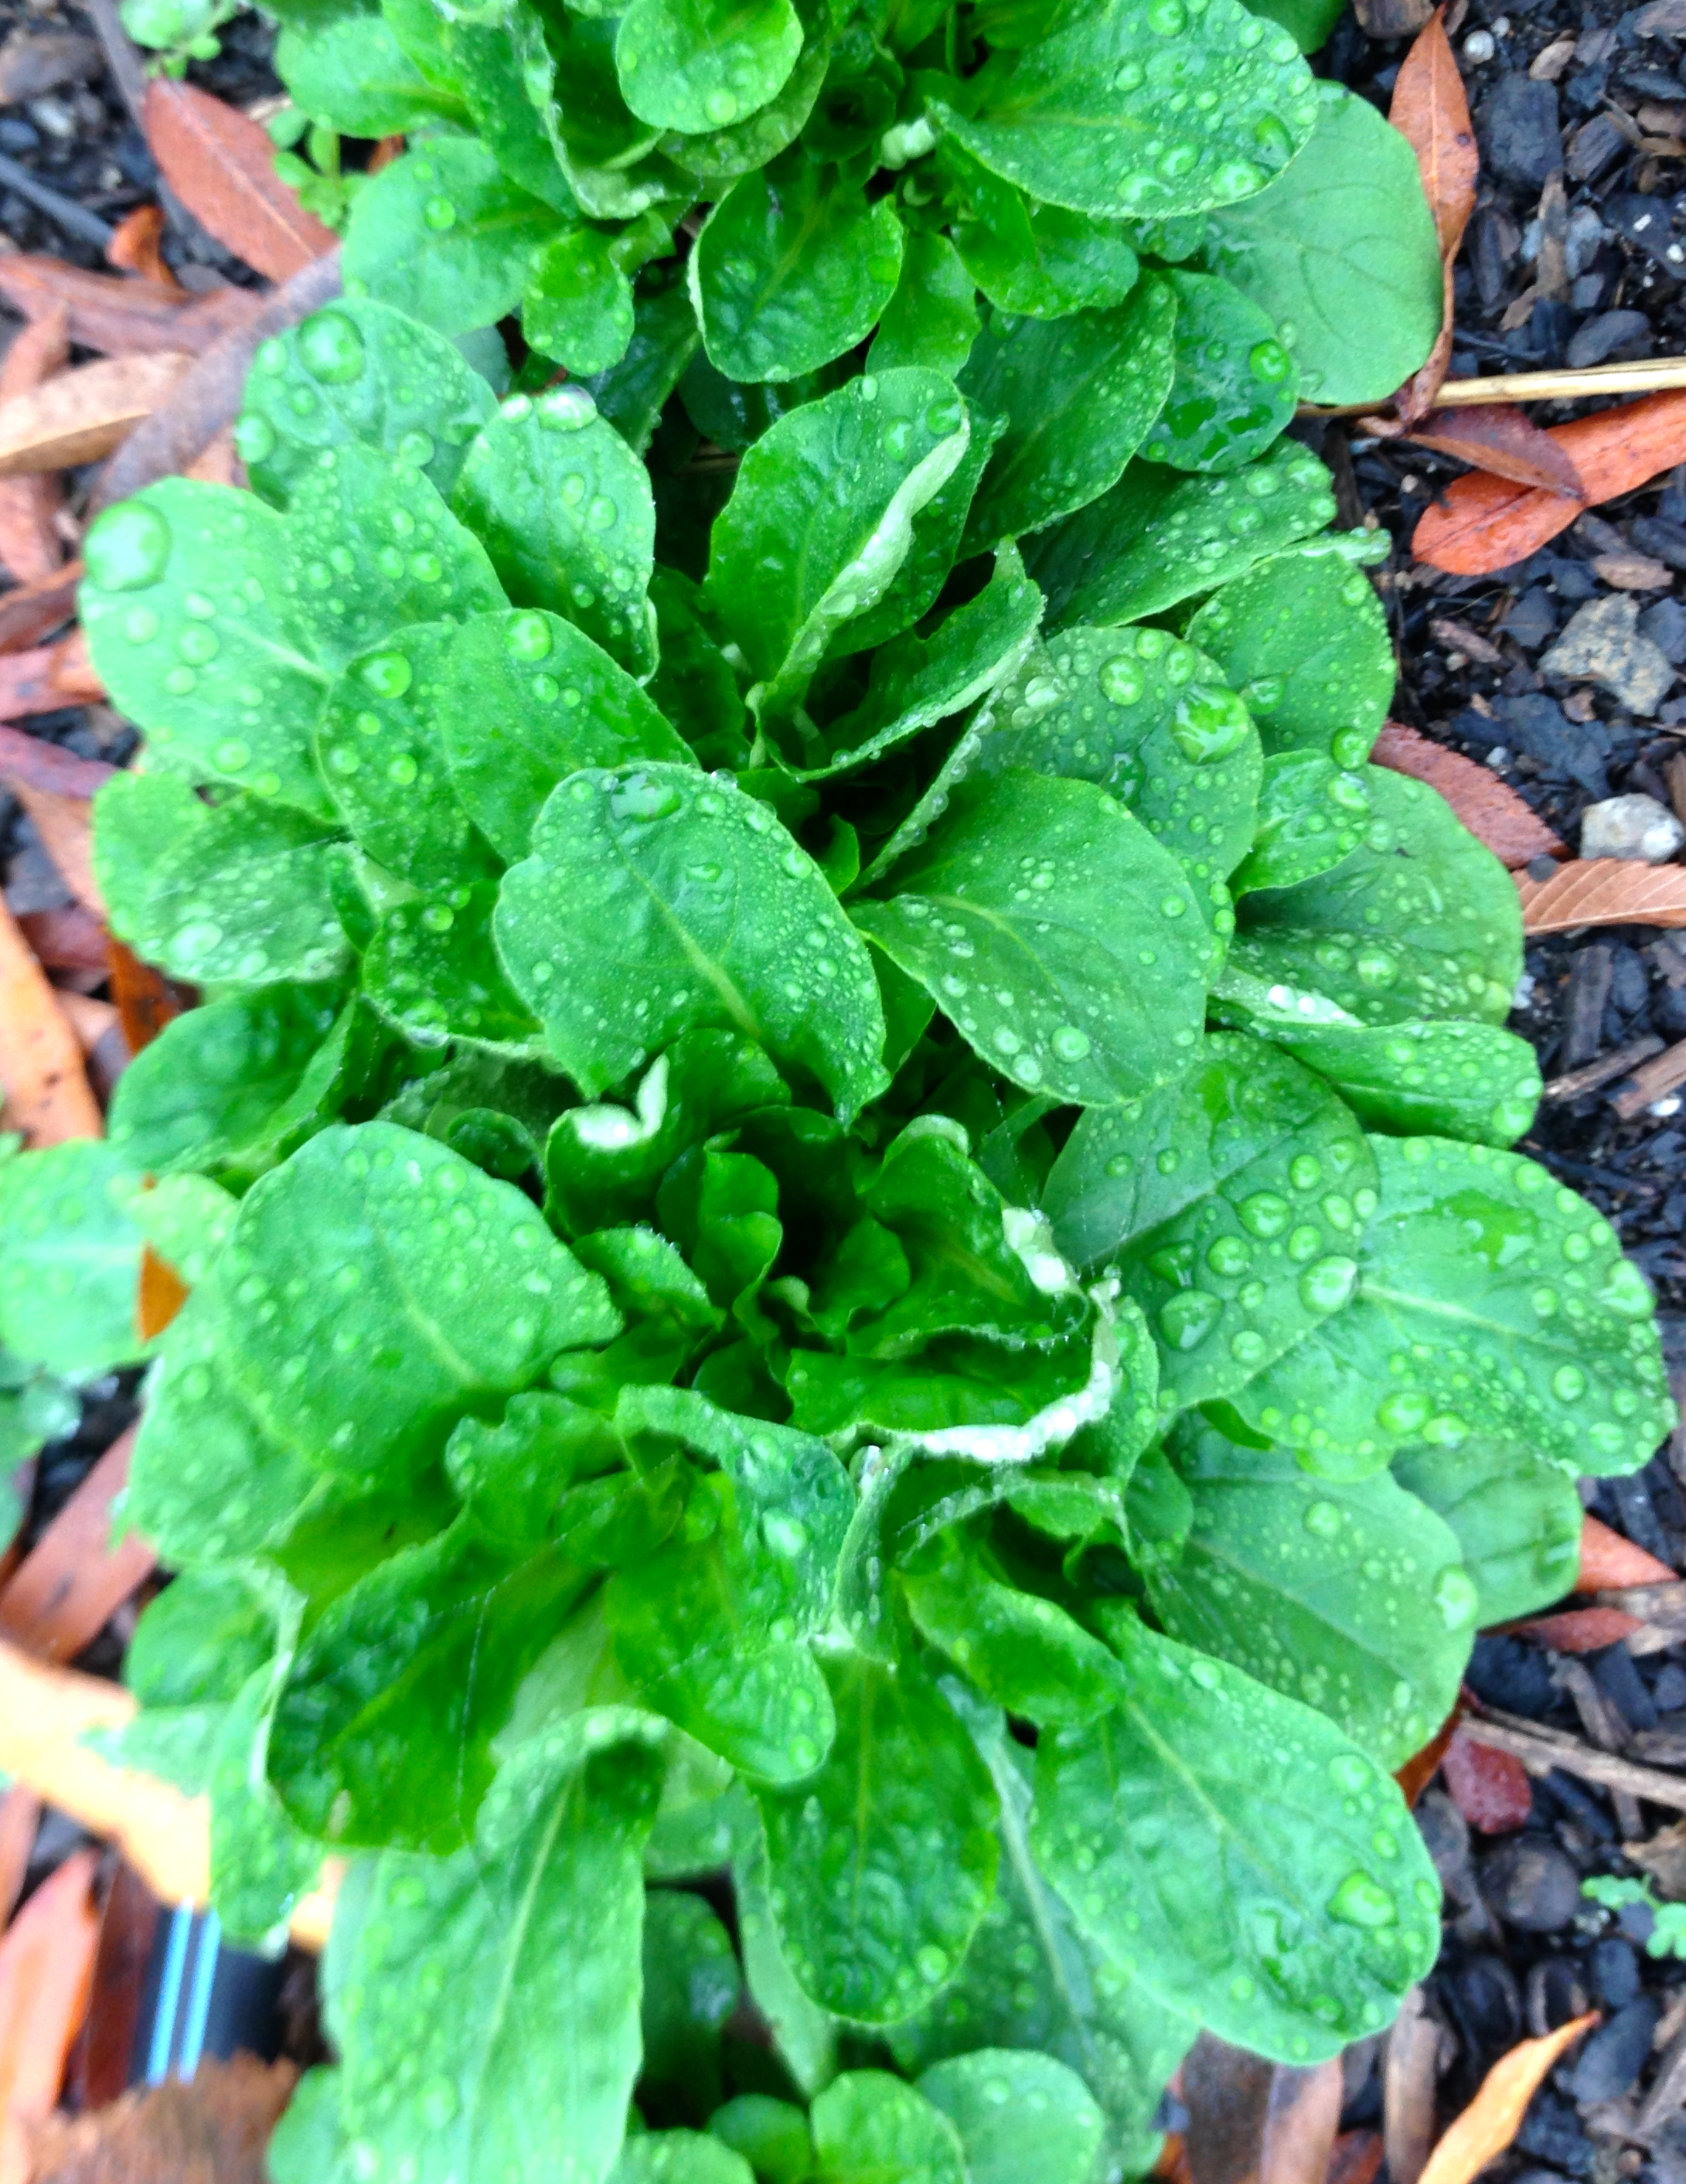 A row of mache or corn salad sparkles on a rainy day. This green has been cultivated in France for hundreds of years and provides a hearty green in winter salads.